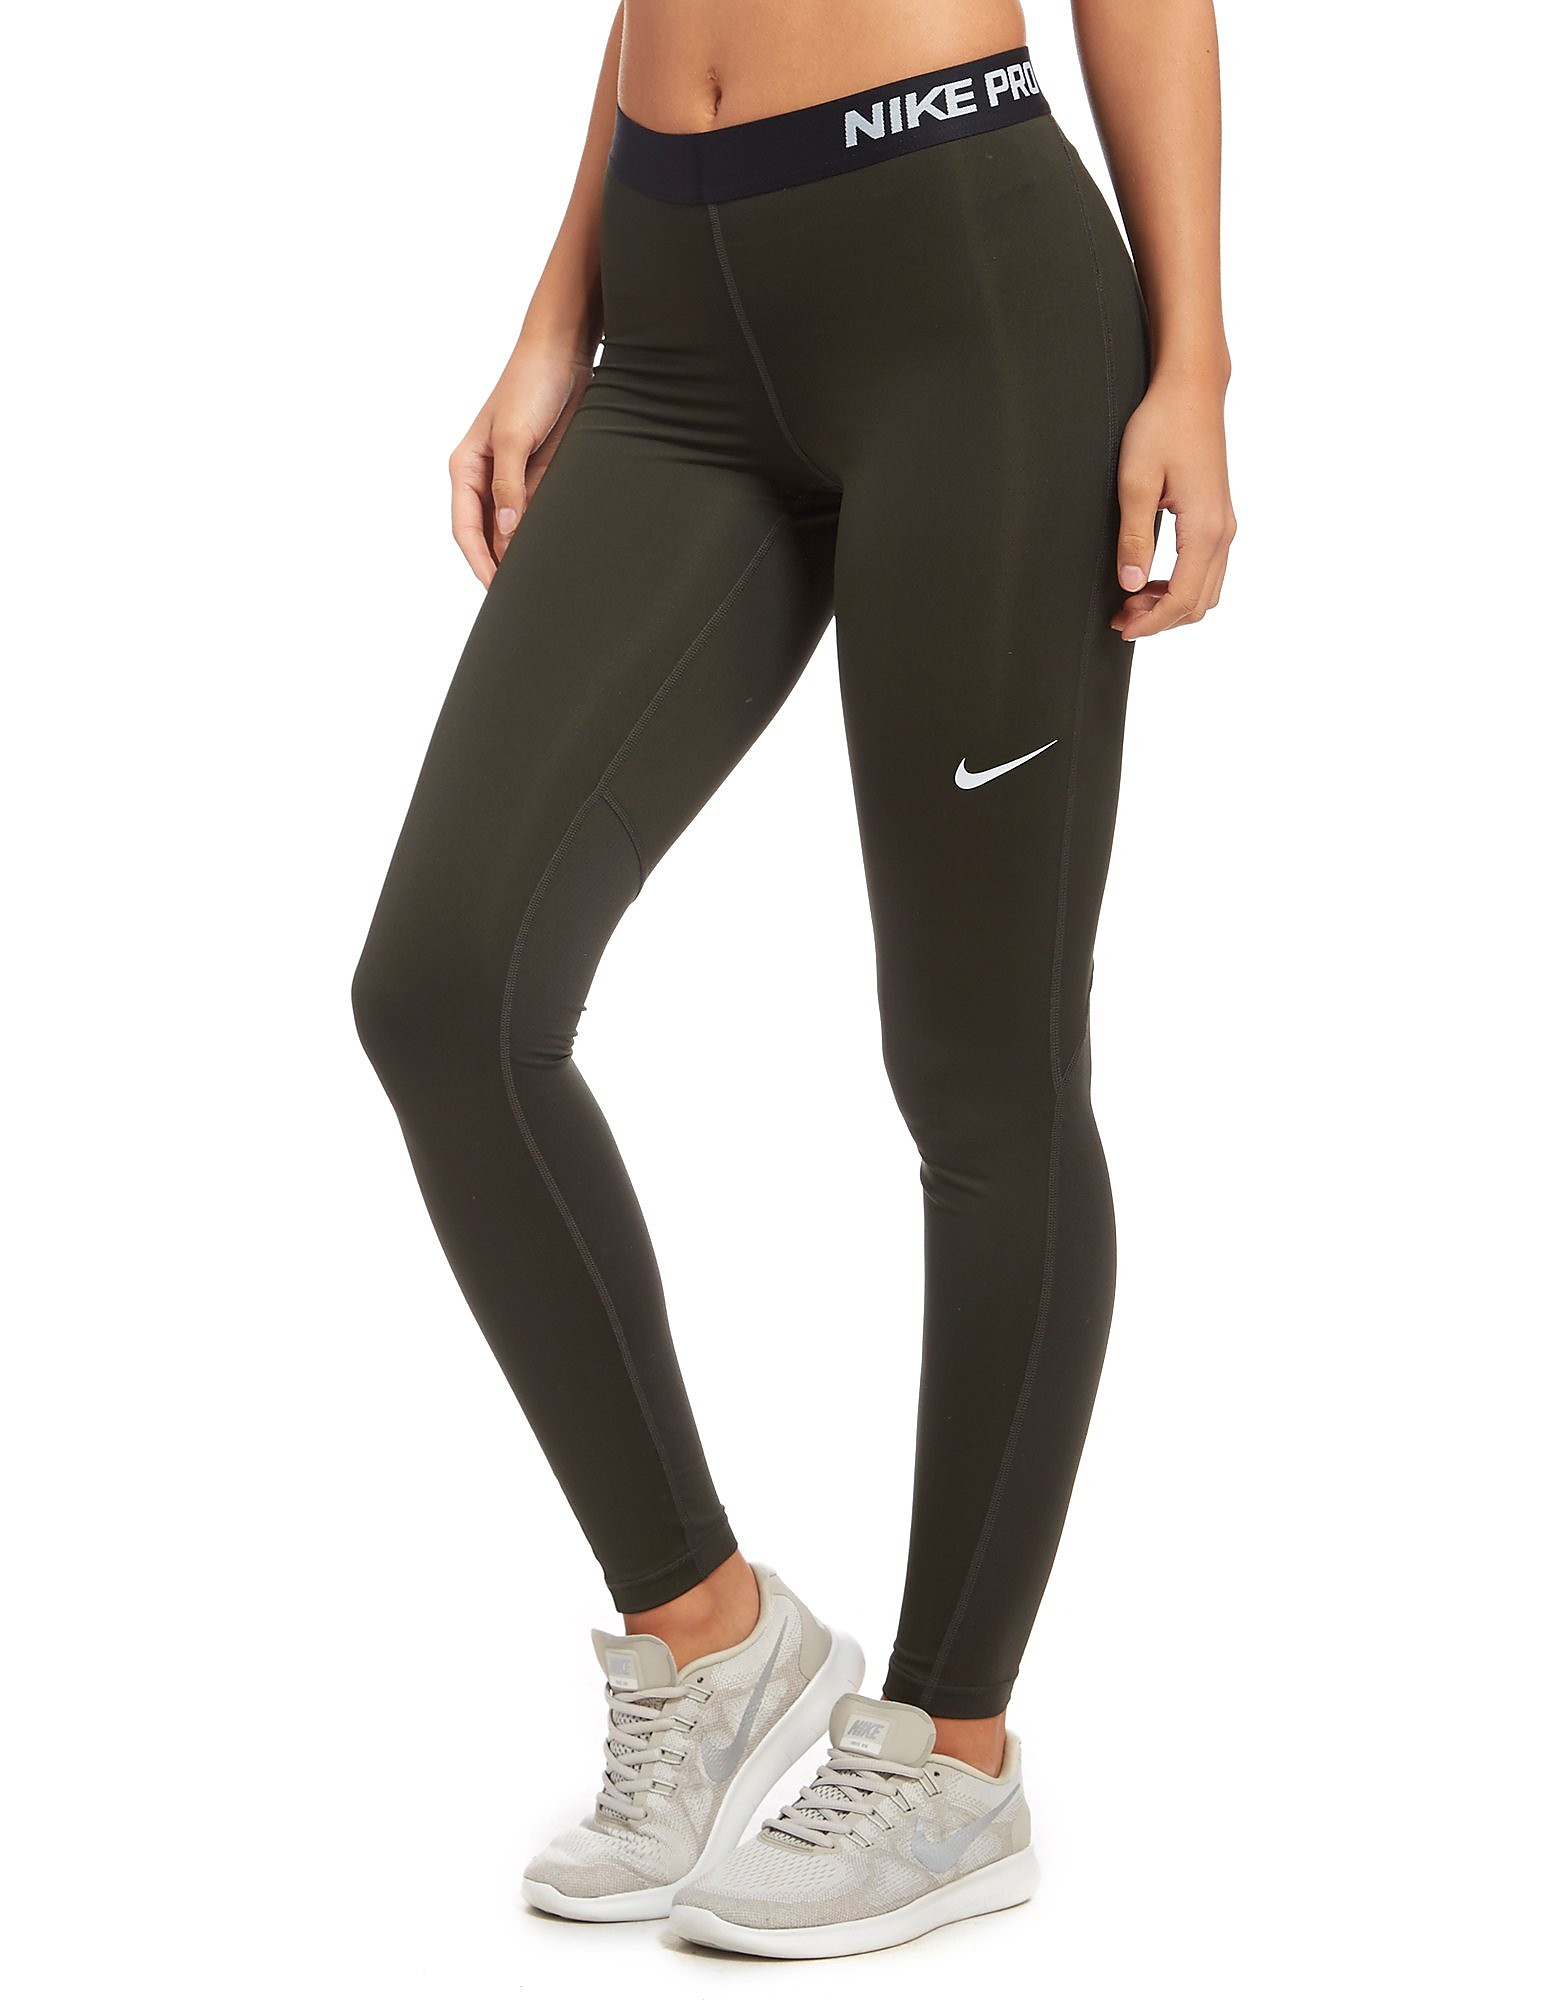 Nike Pro Training Leggings